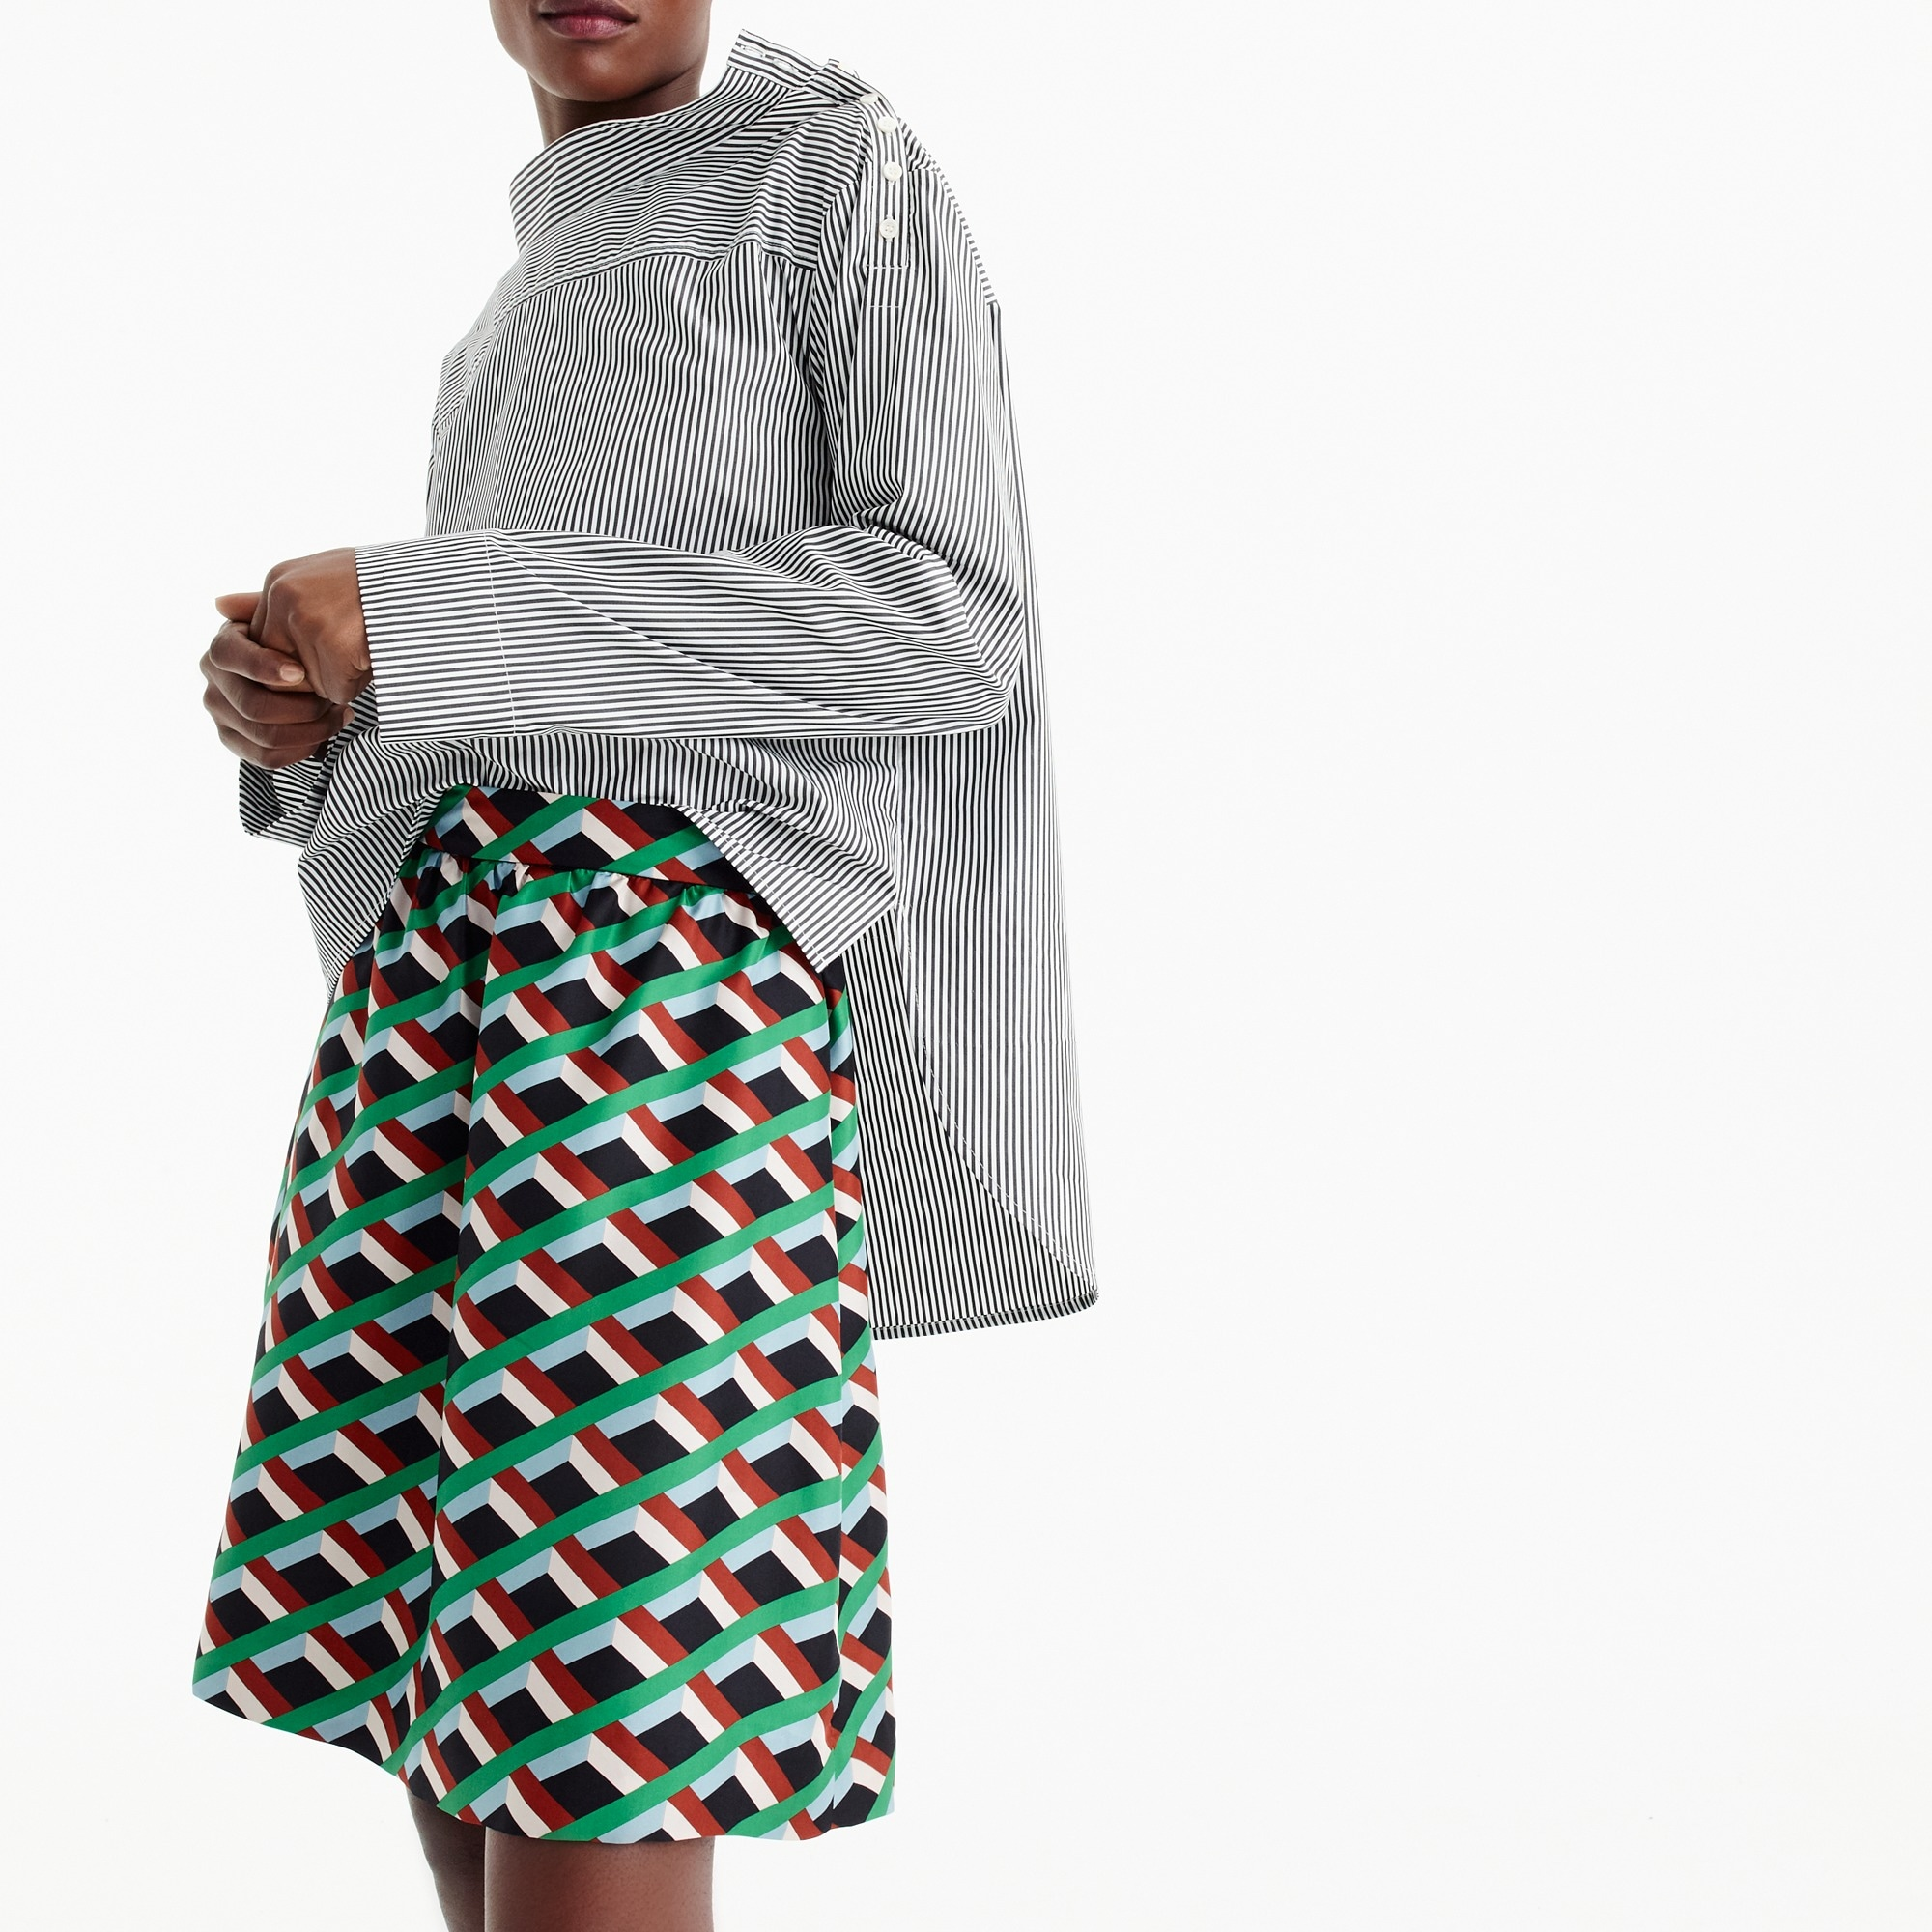 Ratti® graphic diamond print skirt